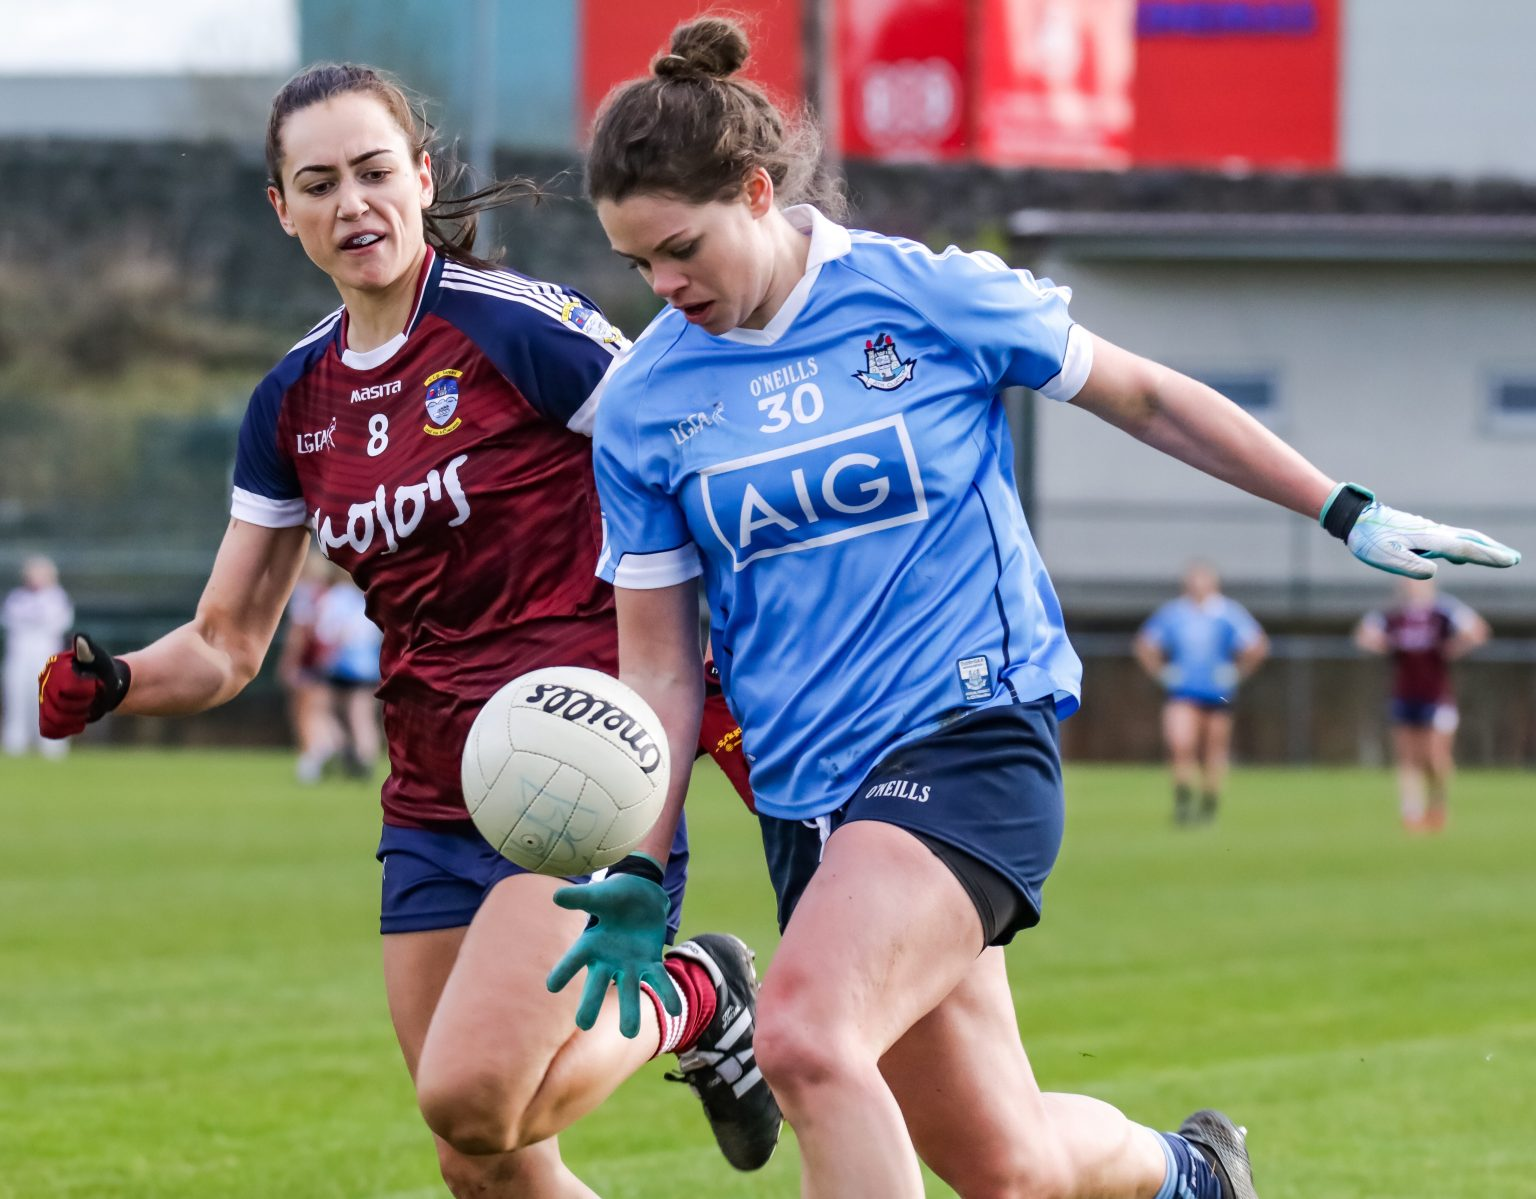 Dublin Forward Noelle Healy In Action Against Westmeath In Today's Lidl Ladies National Football League Game In St Lomans GAA Club In Mullingar